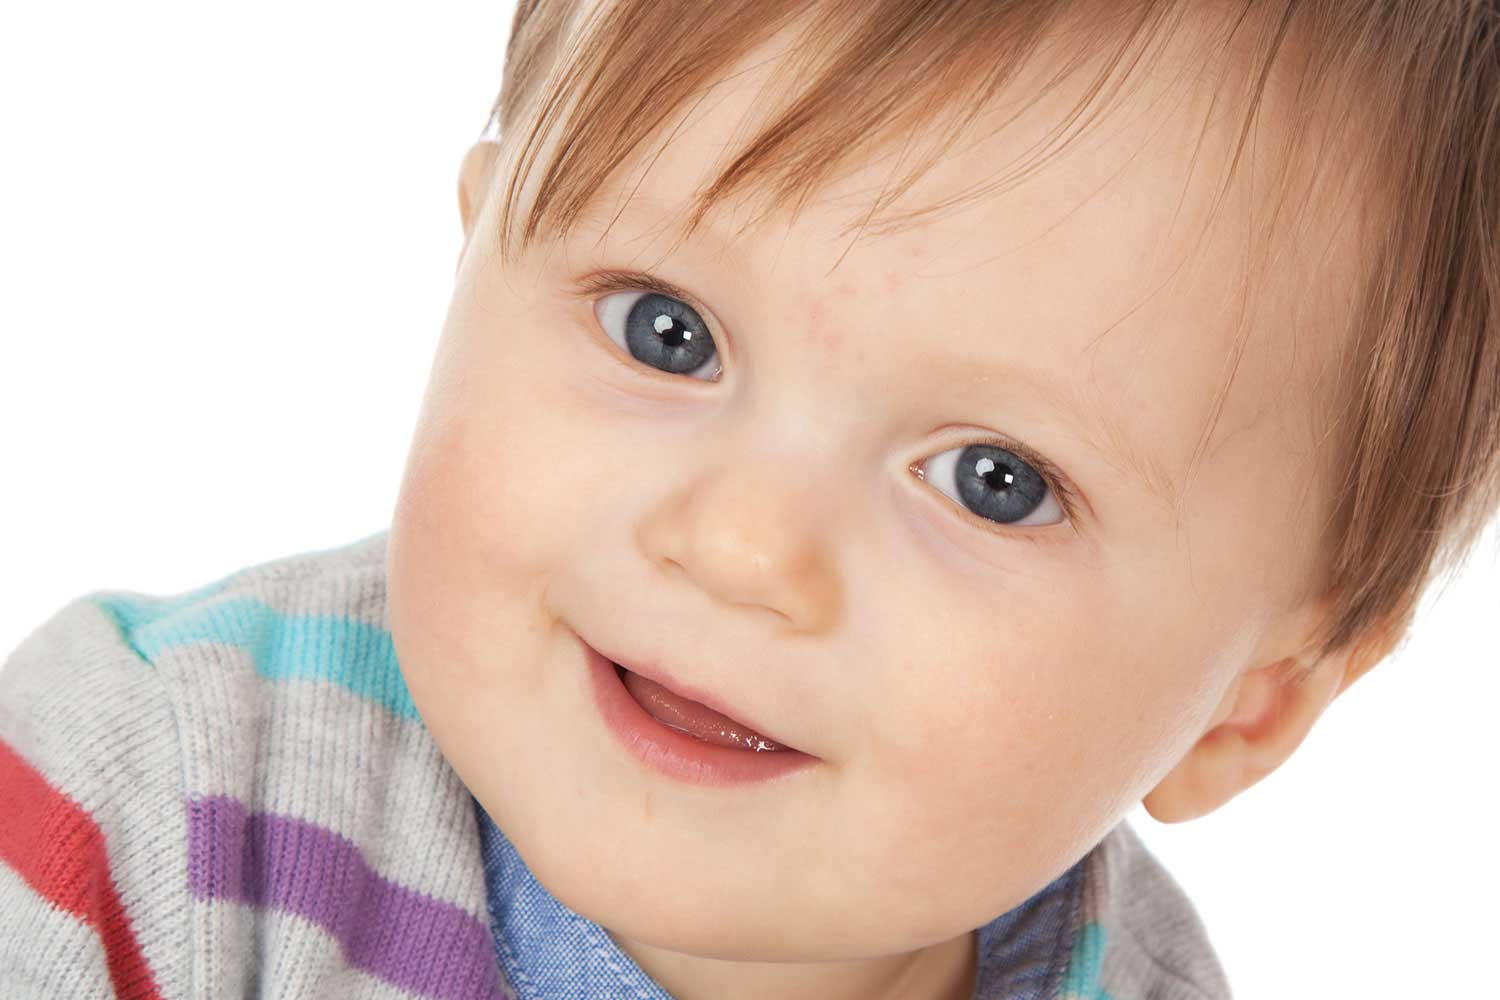 Baby And Toddler Portrait Photography 0014